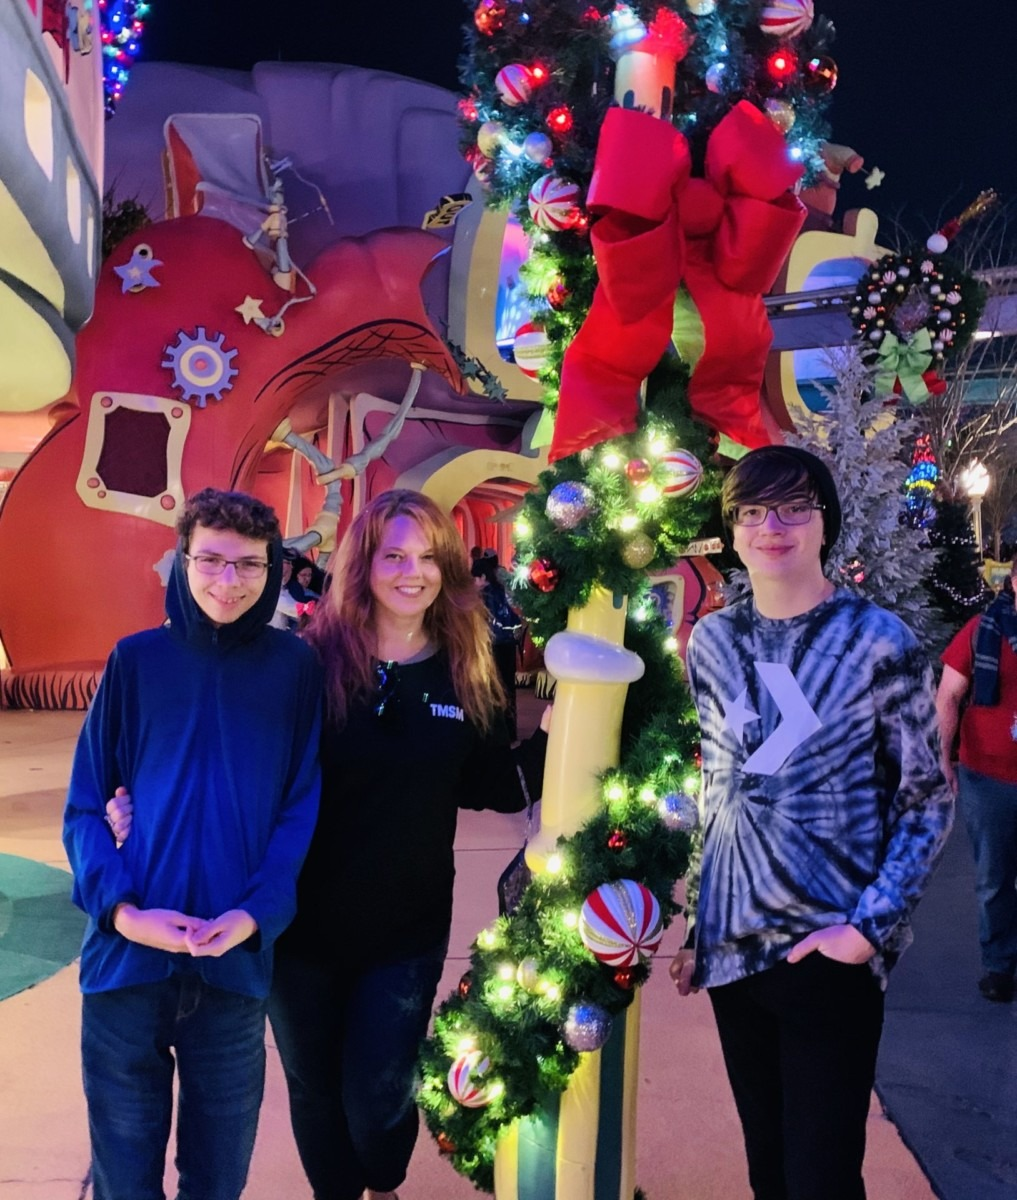 TMSM's Adventures in Florida Living- Getting Ready for Christmas! 7